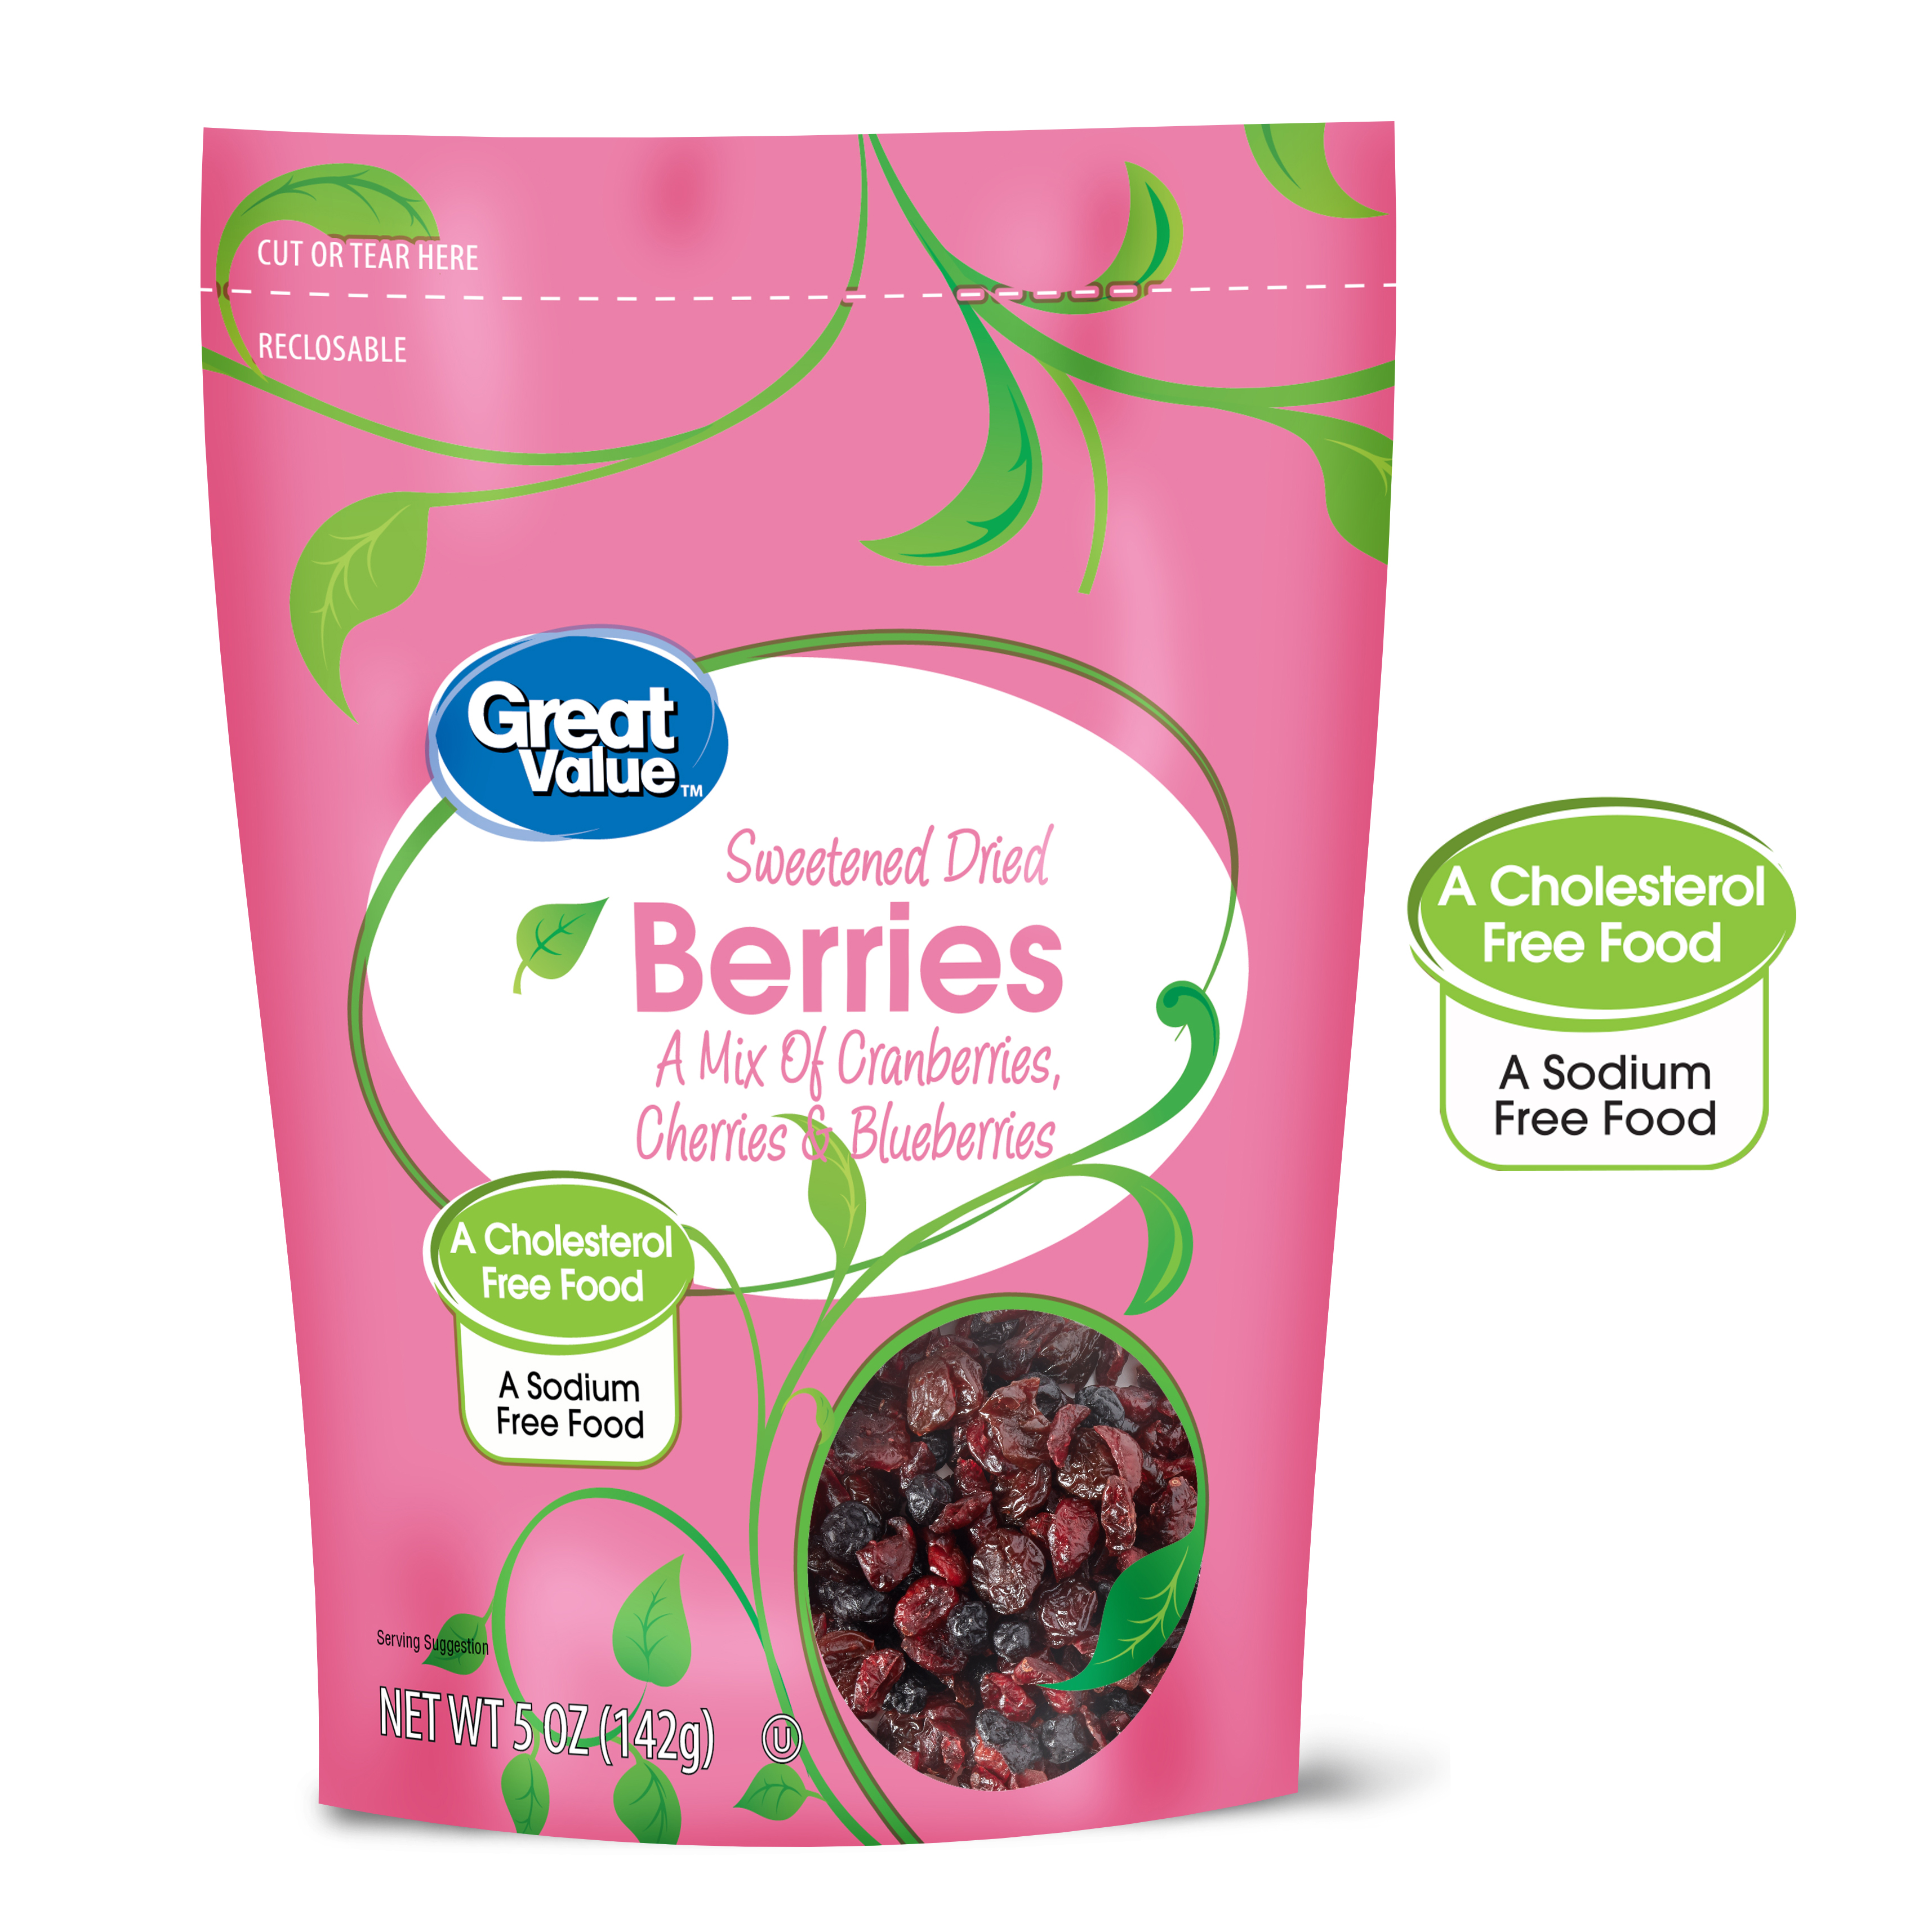 (3 Pack) Great Value Sweetened Dried Mixed Berries, 5 oz